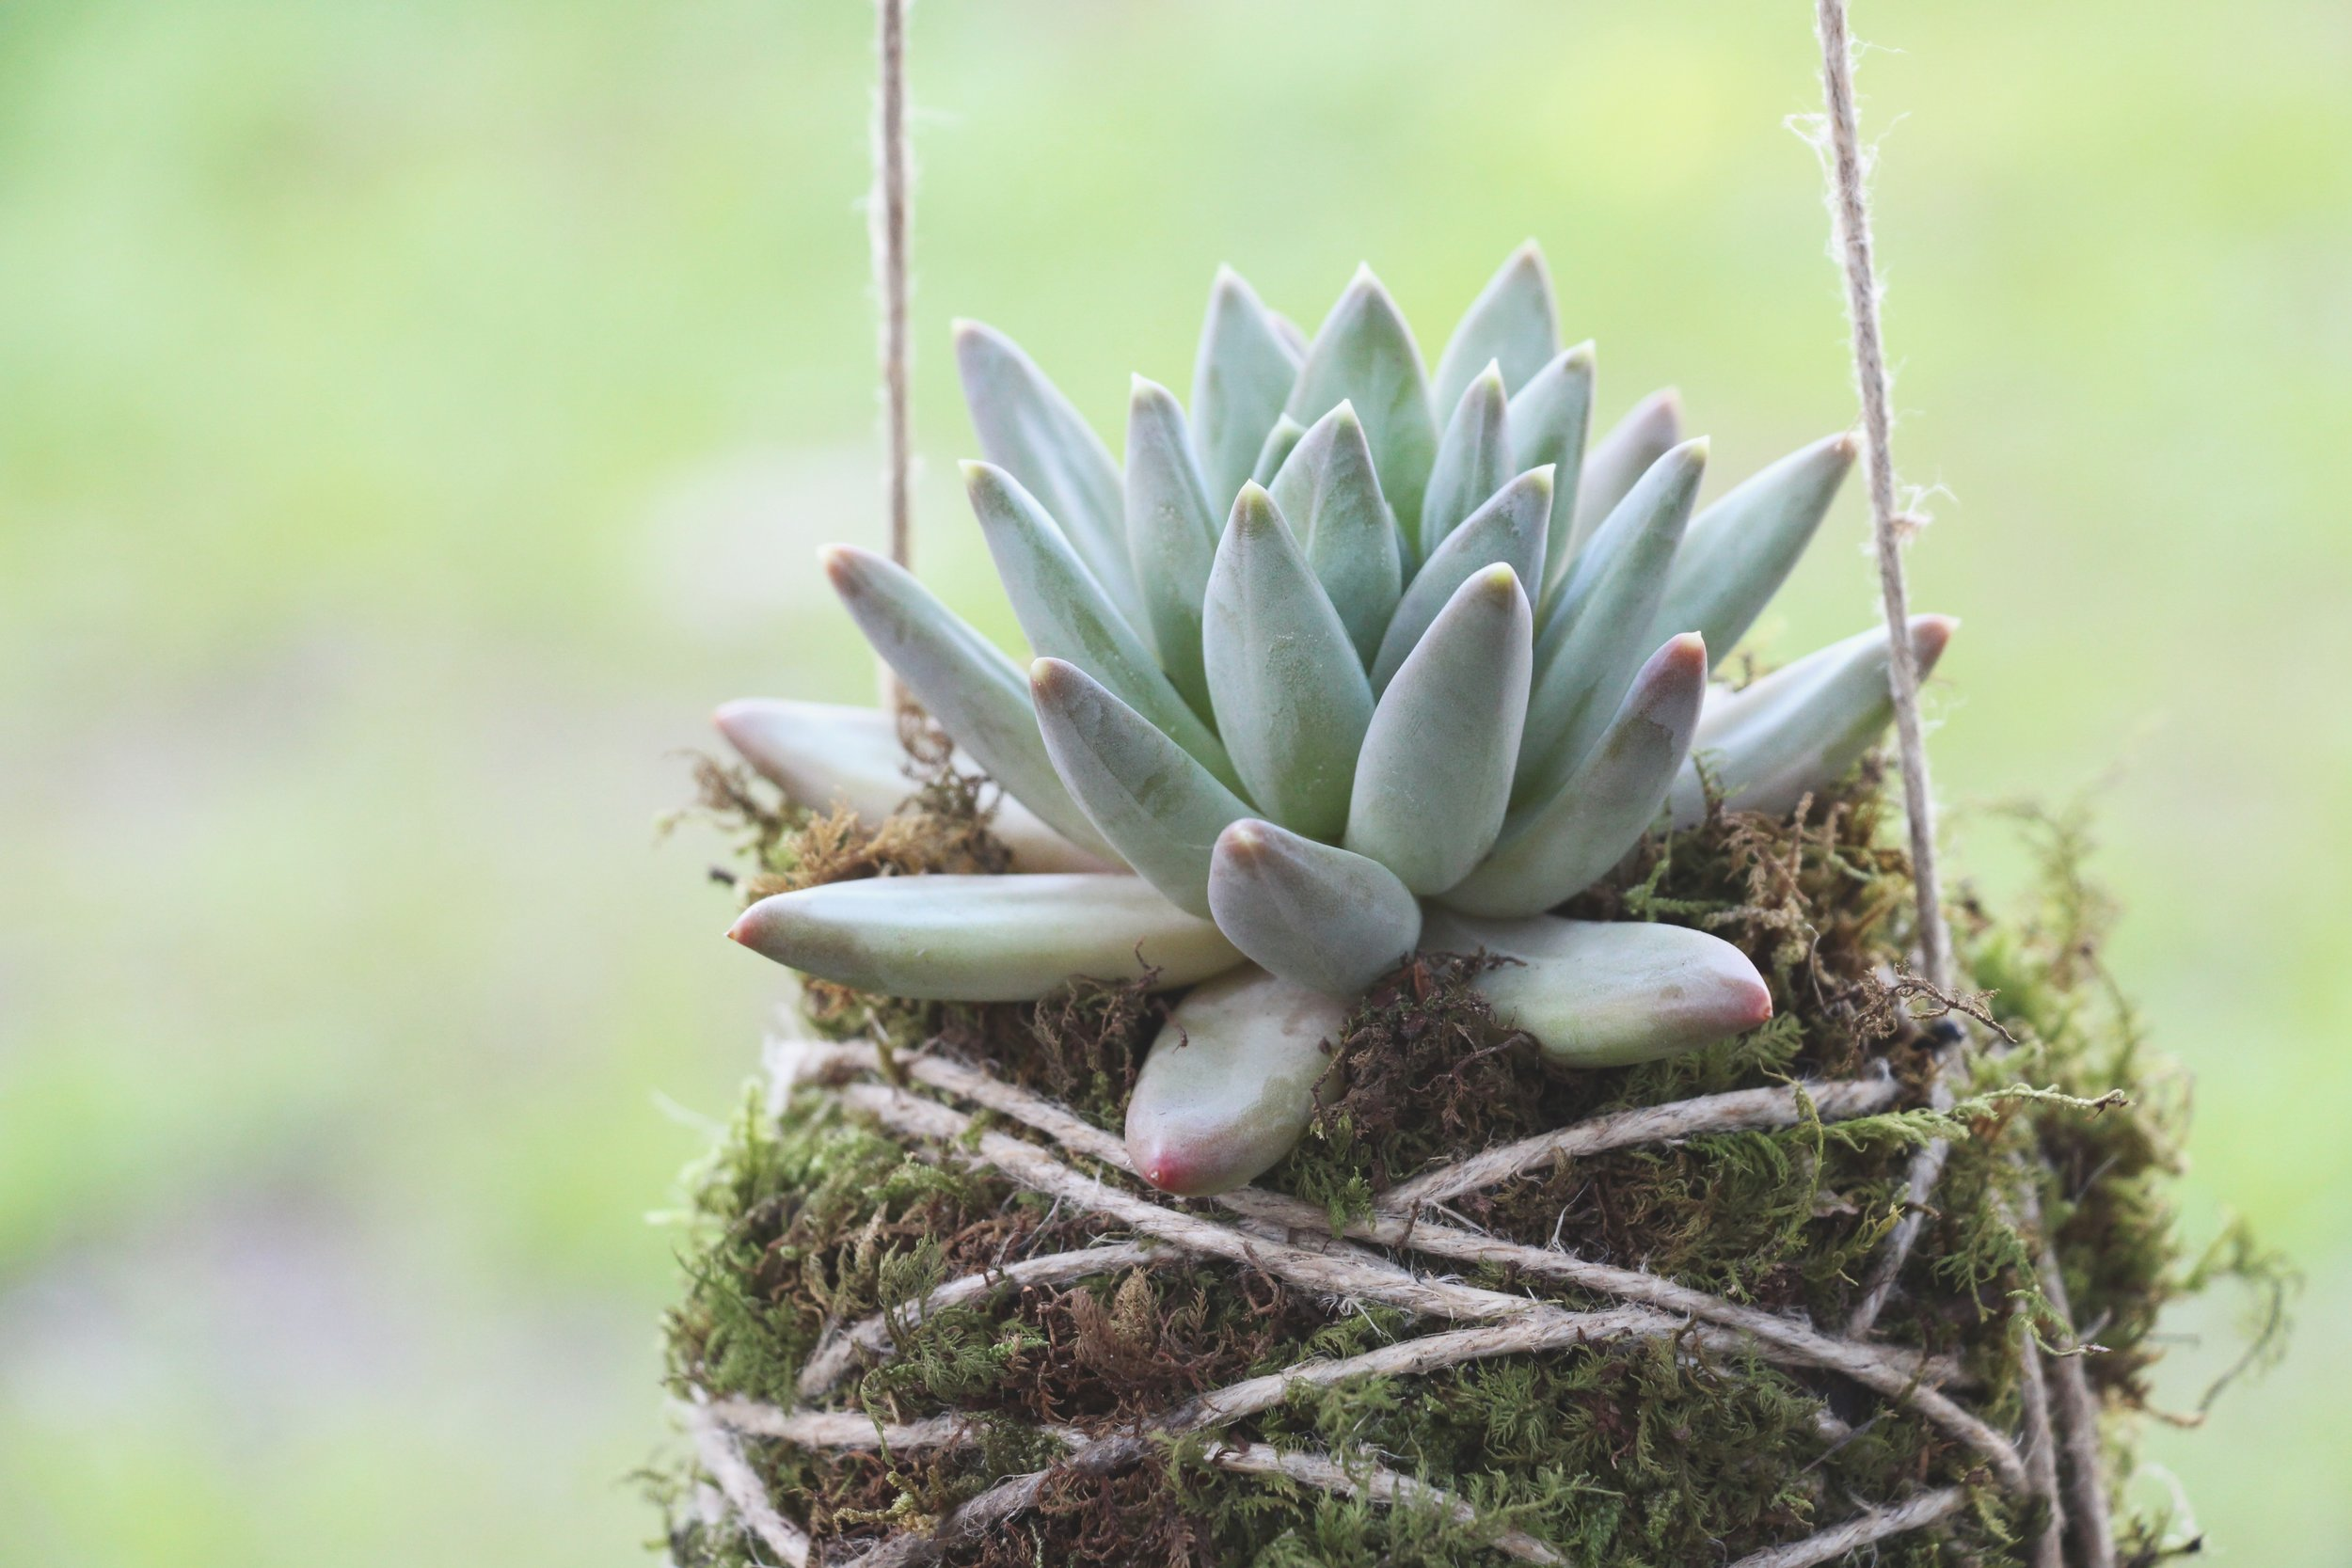 Pachyveria 'Little Jewel' succulent photo by Needles + Leaves